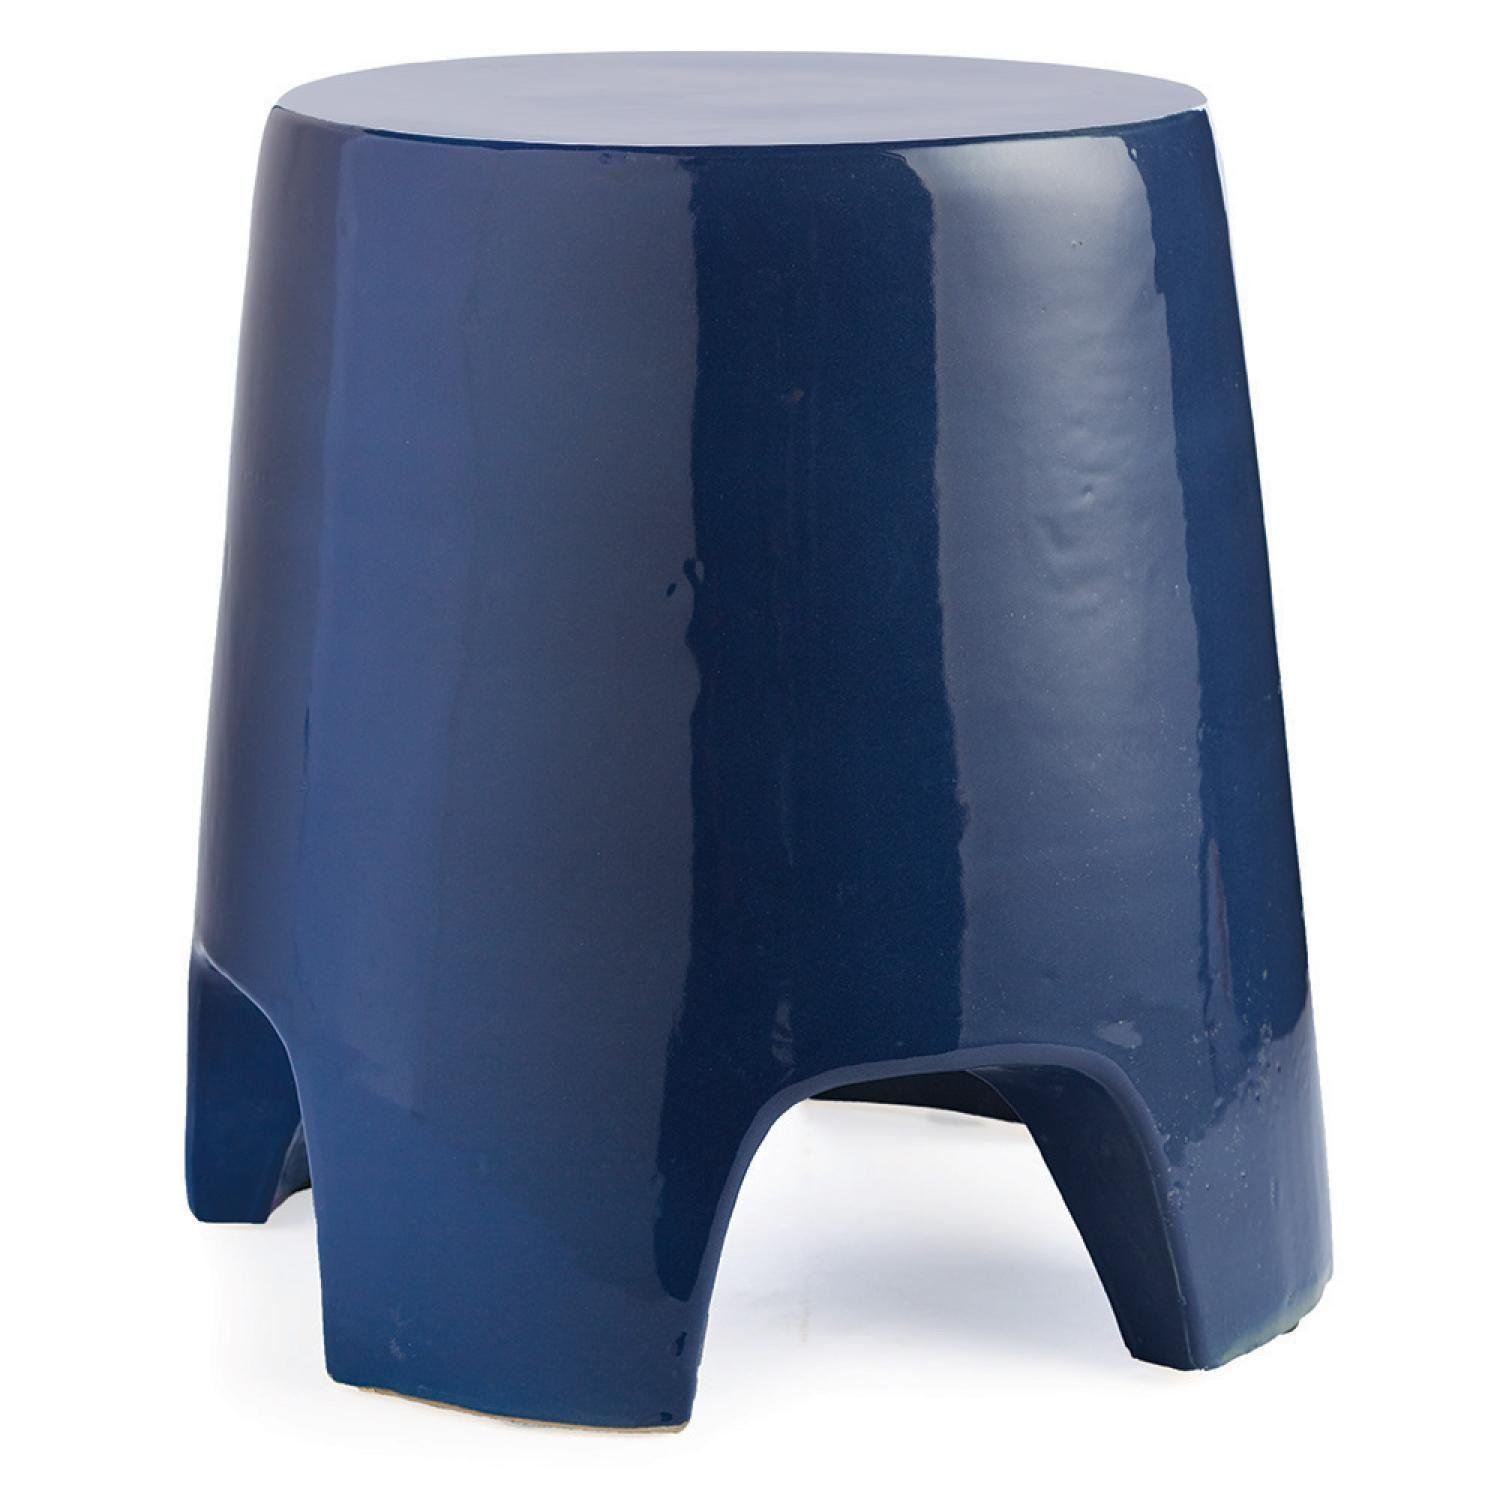 "18.5"" Versatile Uniquely Shaped Striking Royal Blue Indoor Stool by CC Home Furnishings"